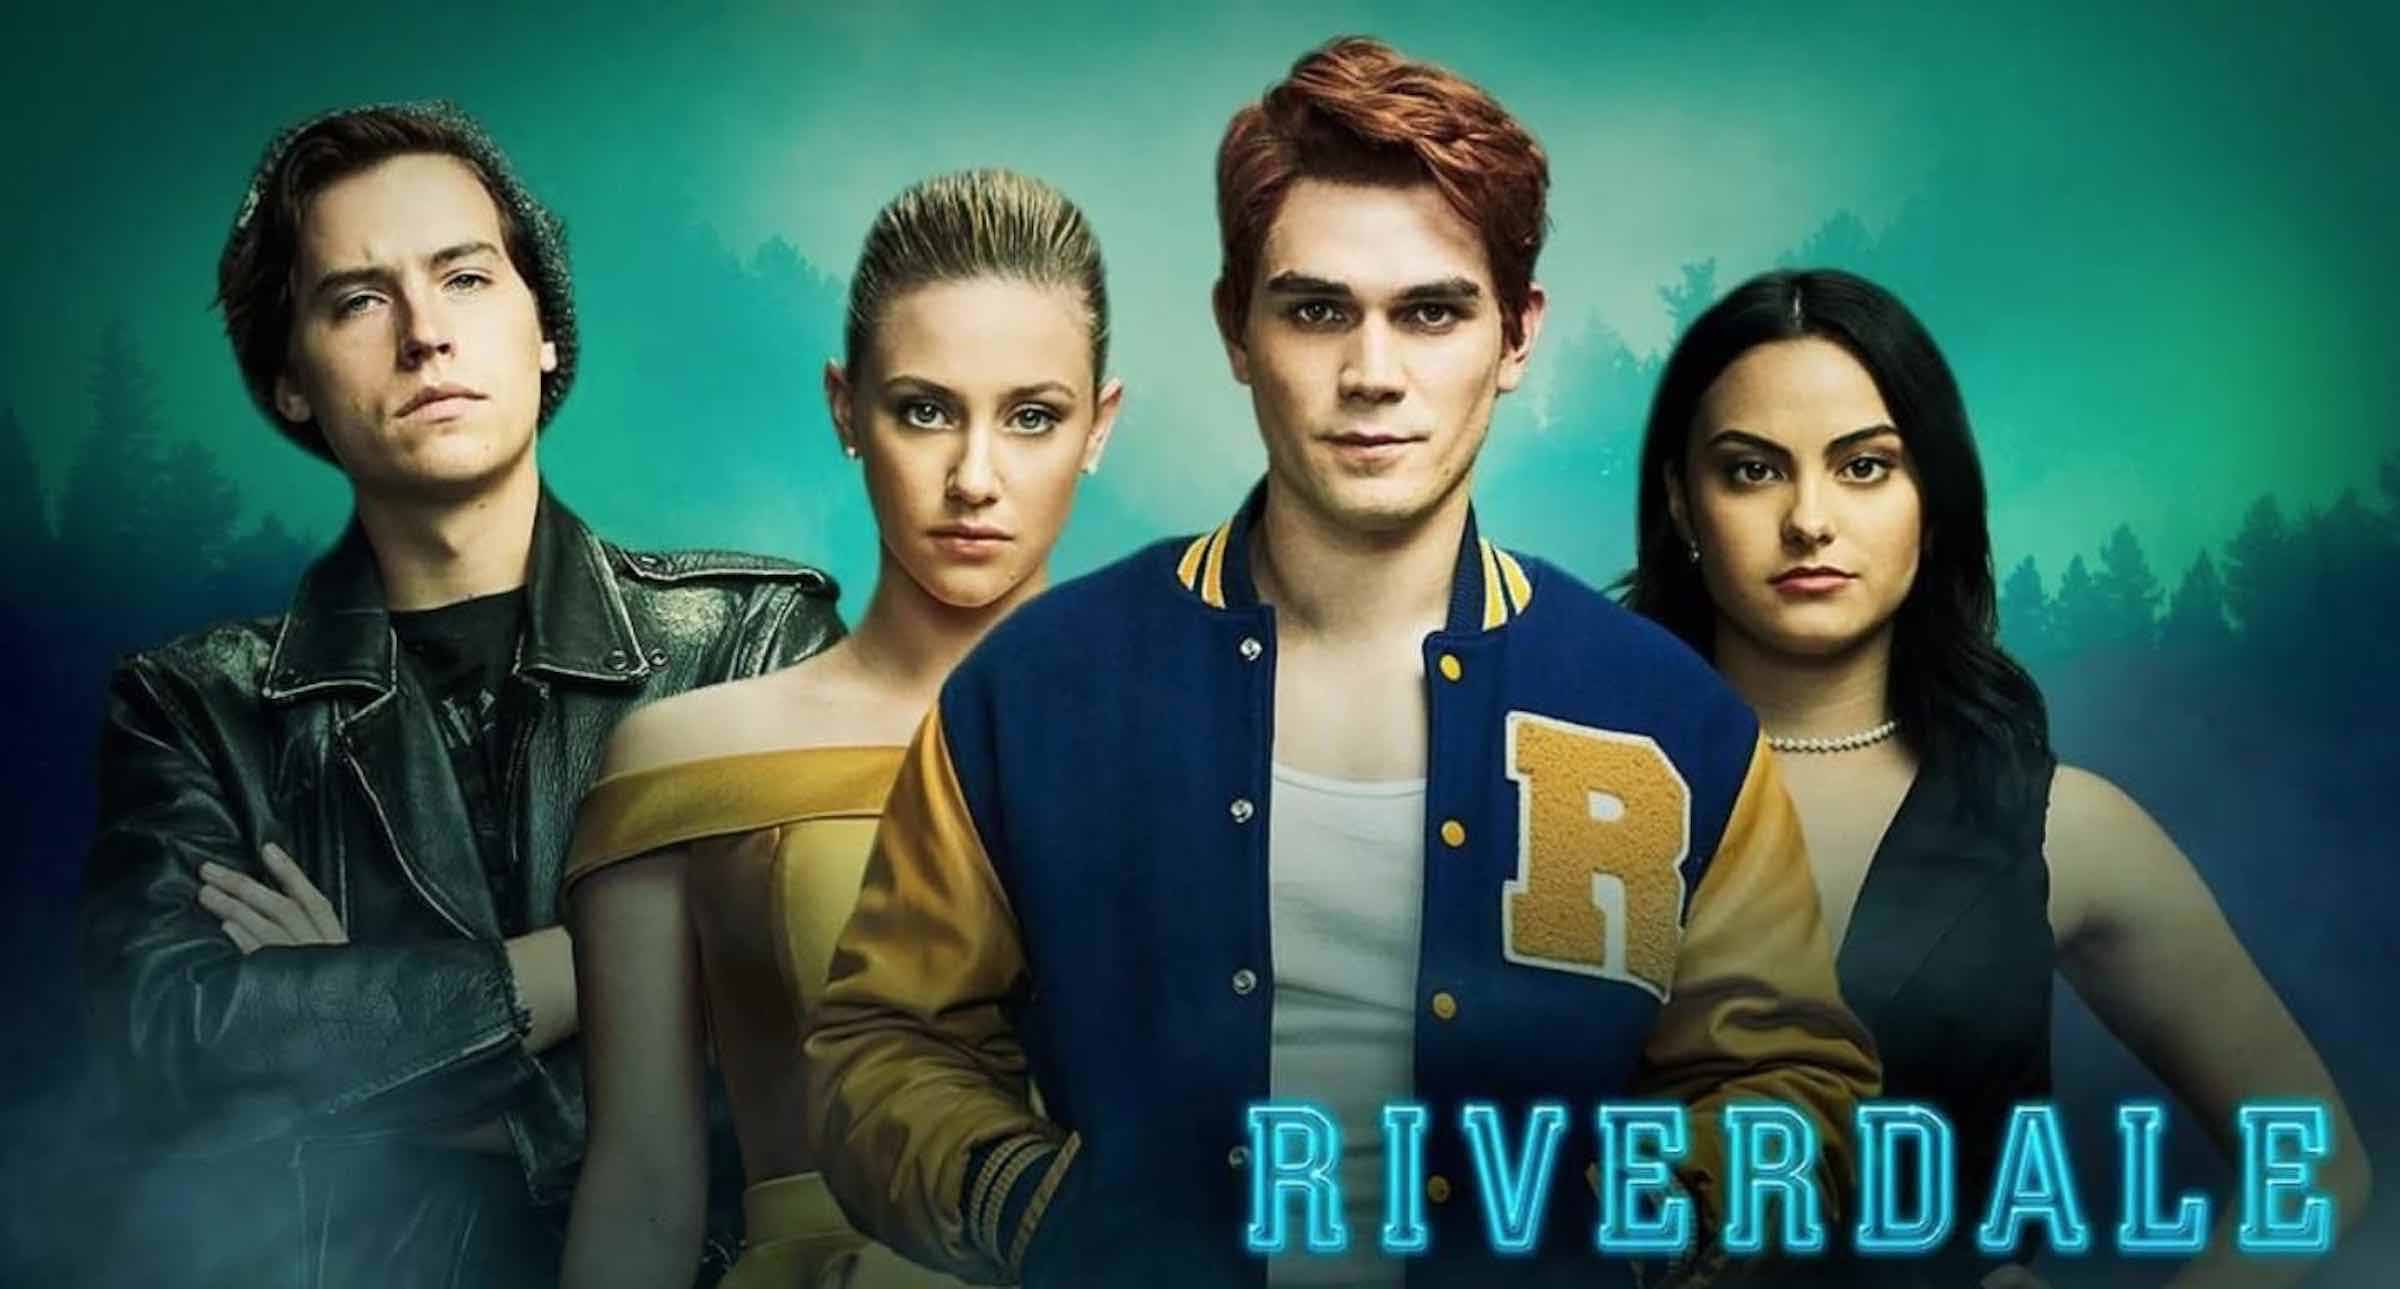 Burning question: Who's the hottest member of the 'Riverdale' cast? – Film  Daily